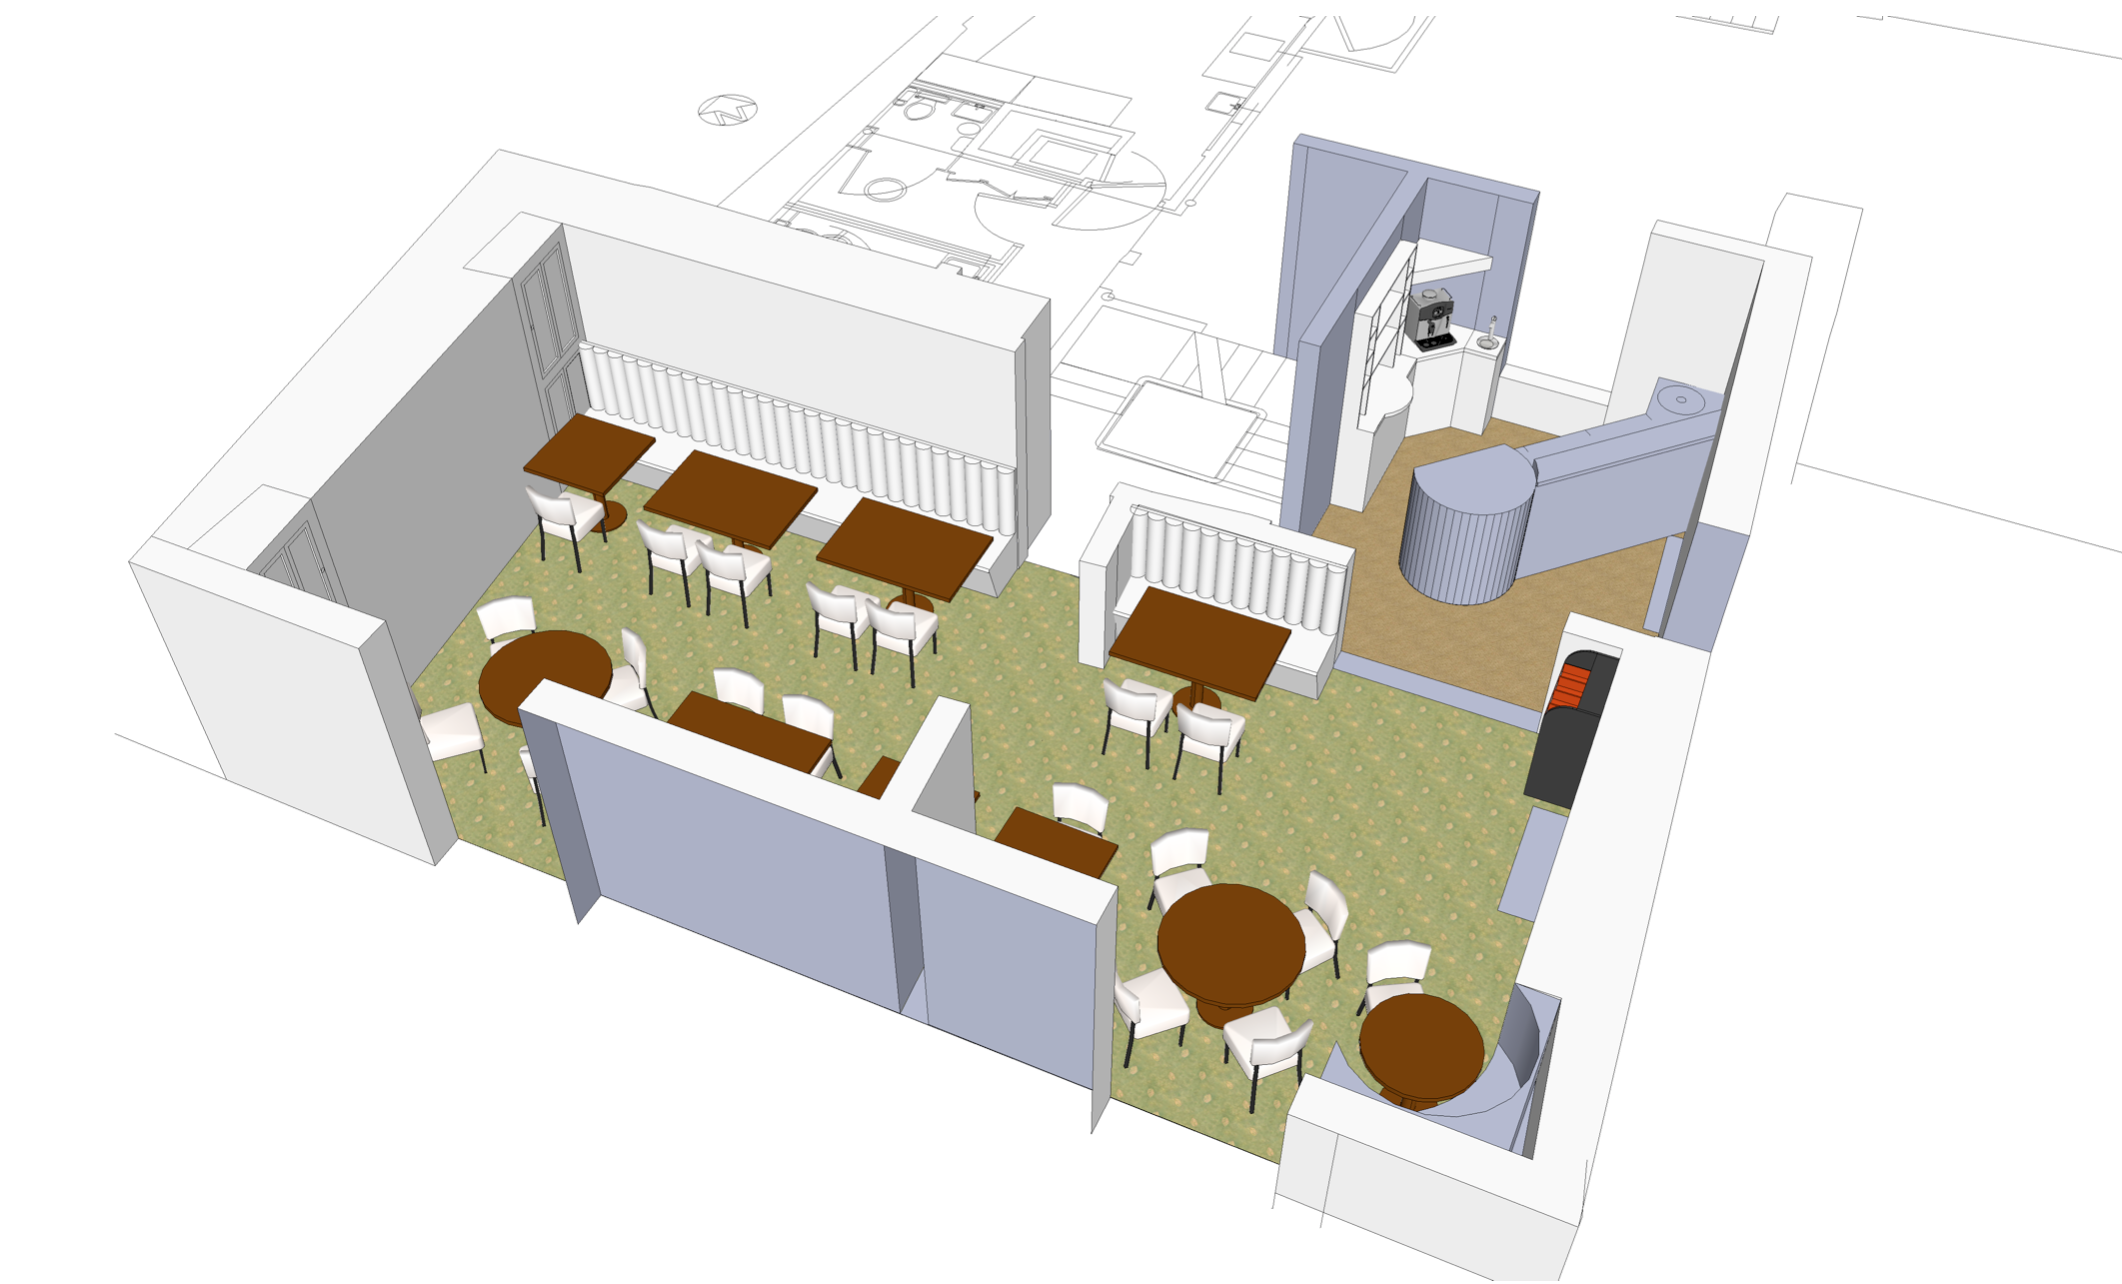 Spatial design for restaurant and bar area